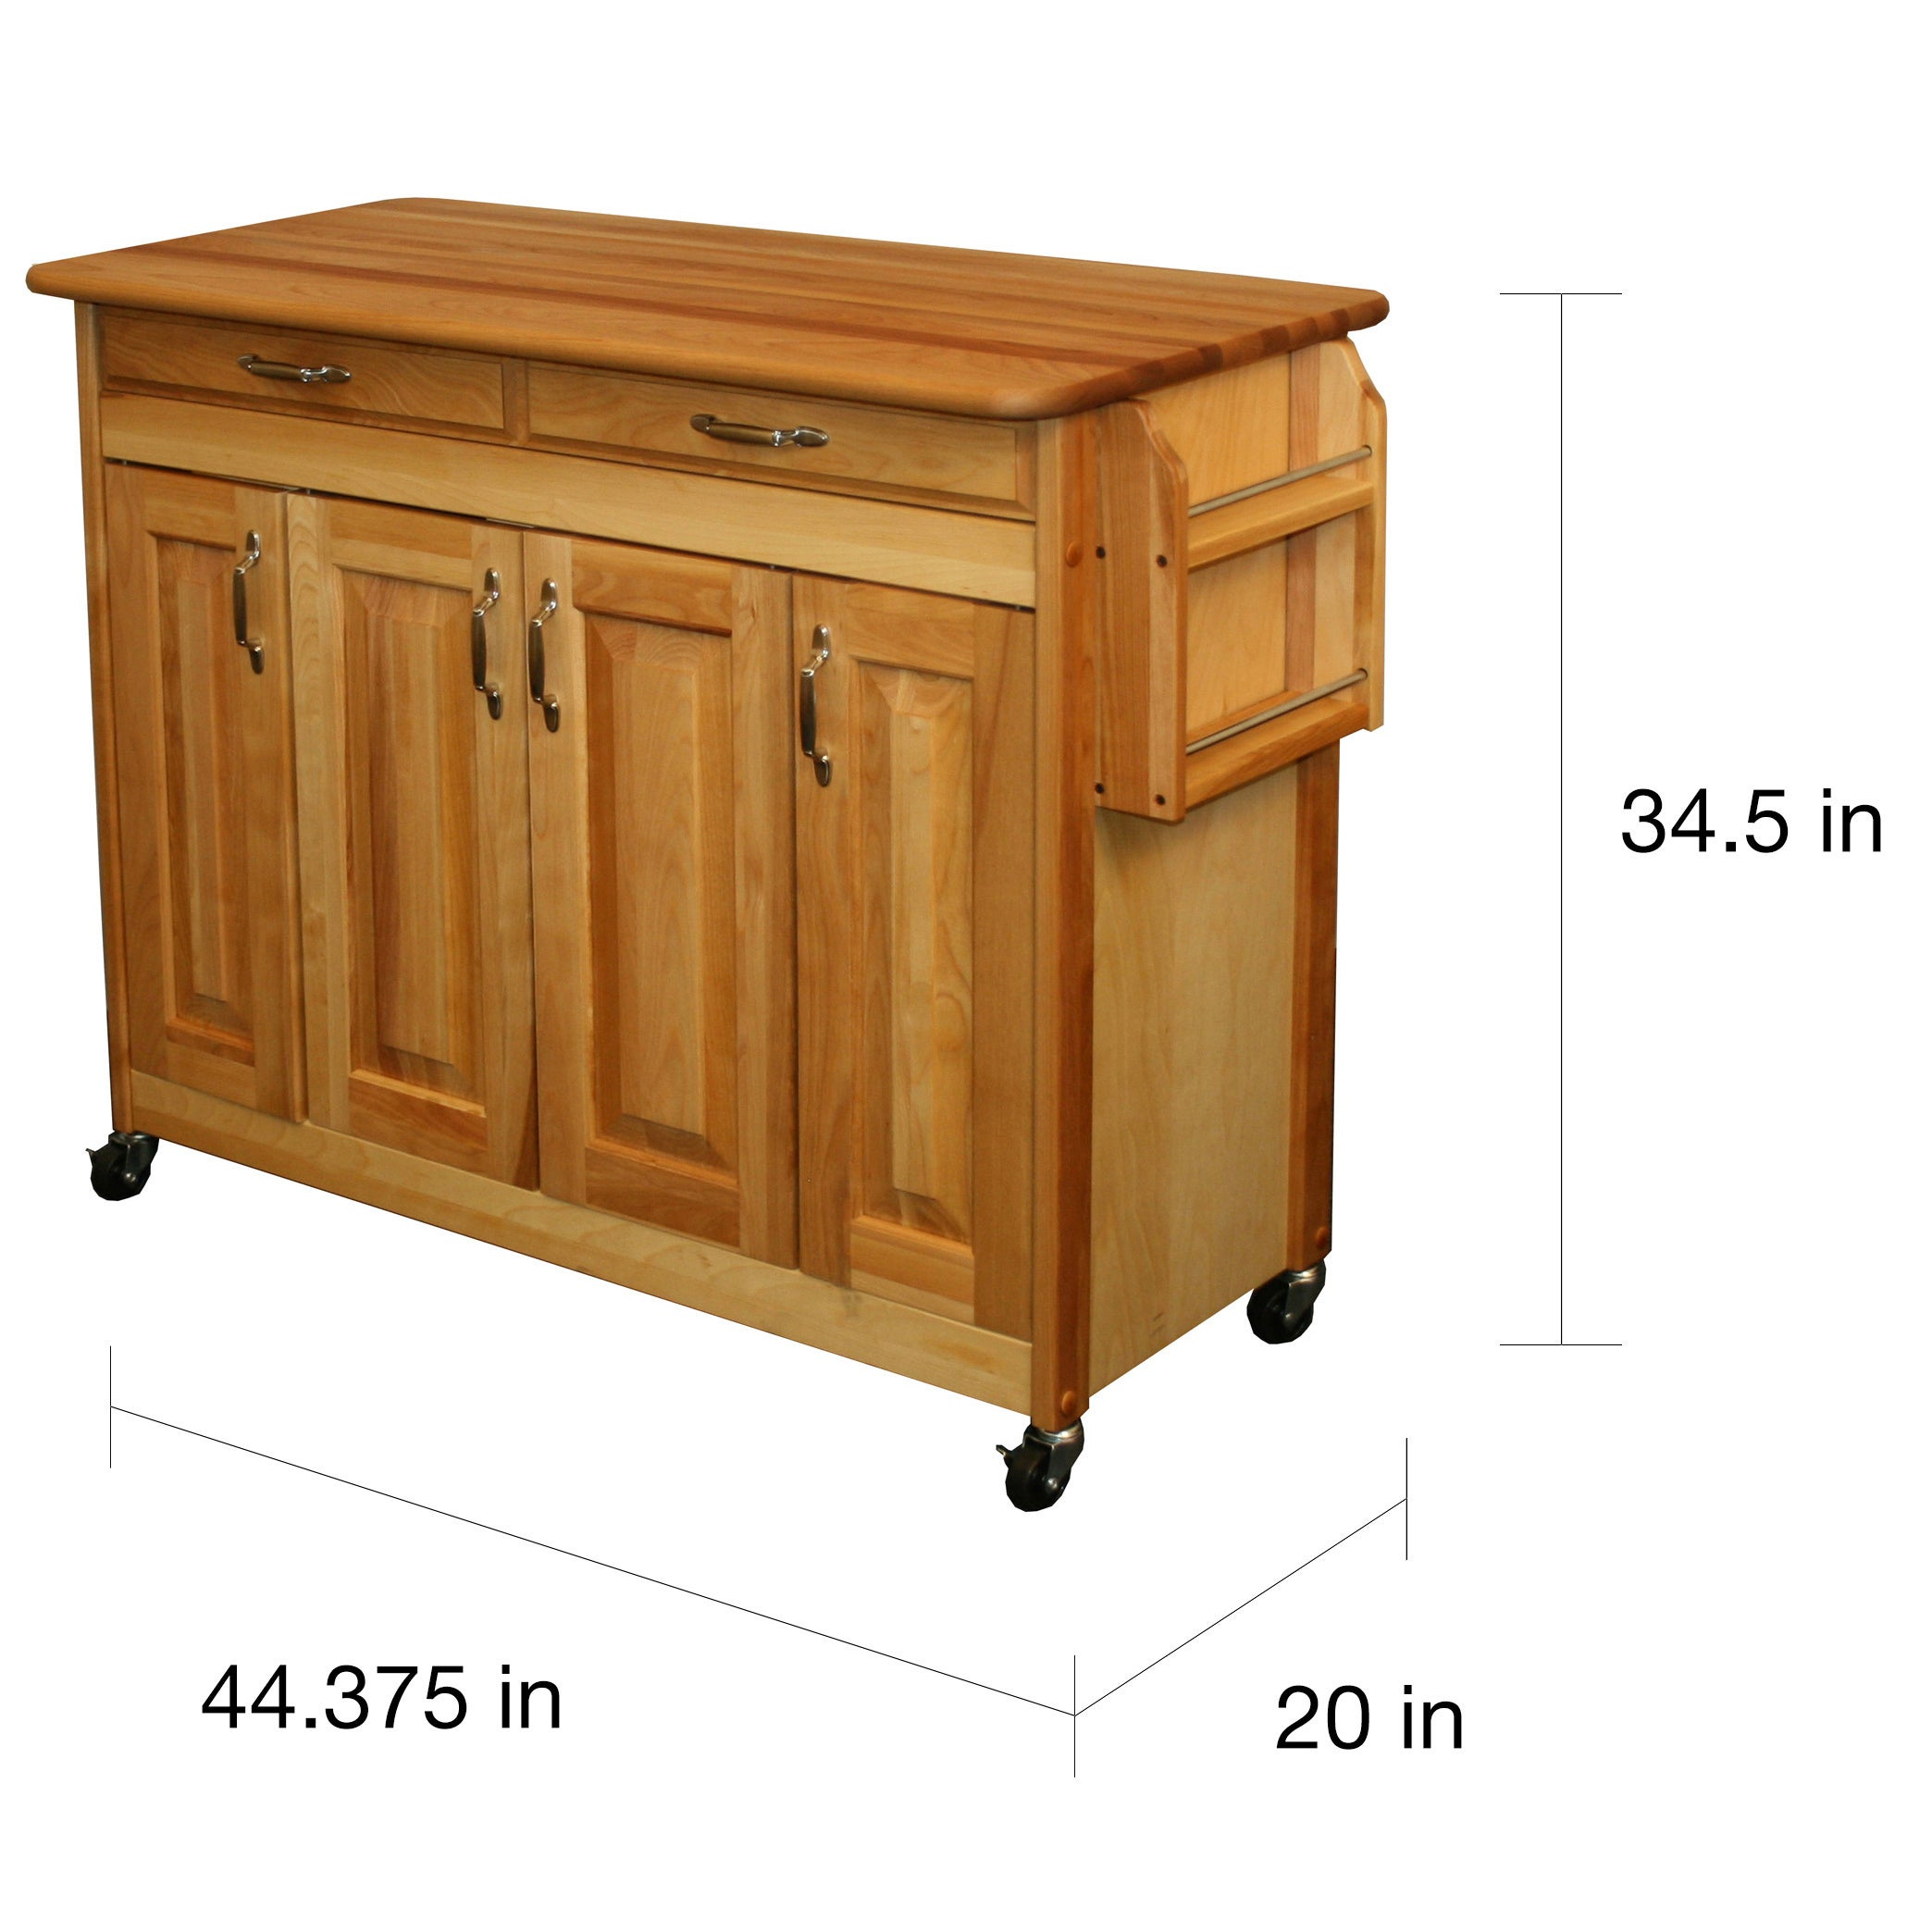 Catskill Craftsmen Coupons & Deals 12222: Upto 70% Off on Particular Products